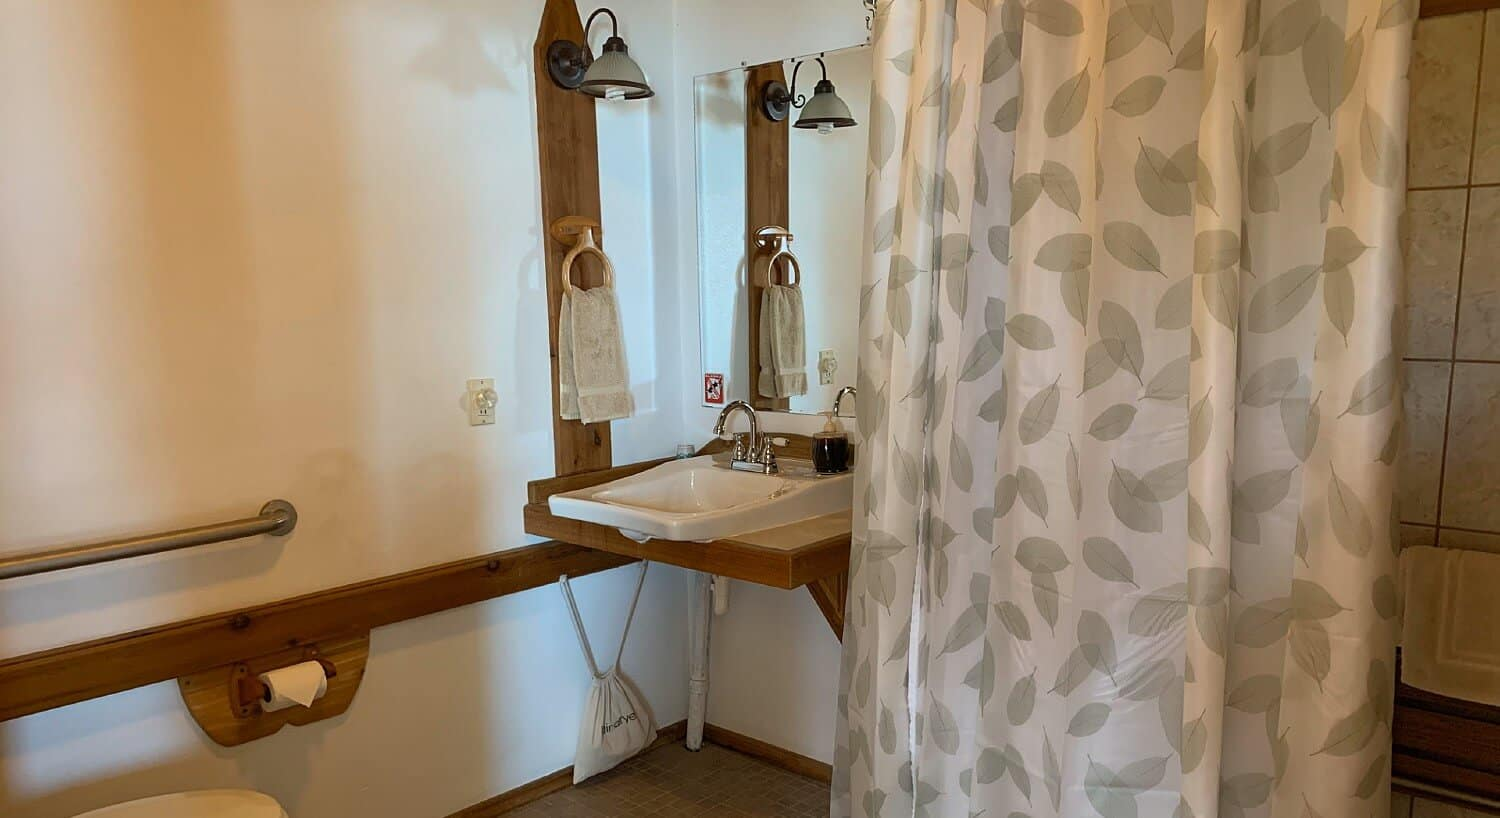 Bathroom featuring wood vanity and white sink and shower with grey and white shower curtain